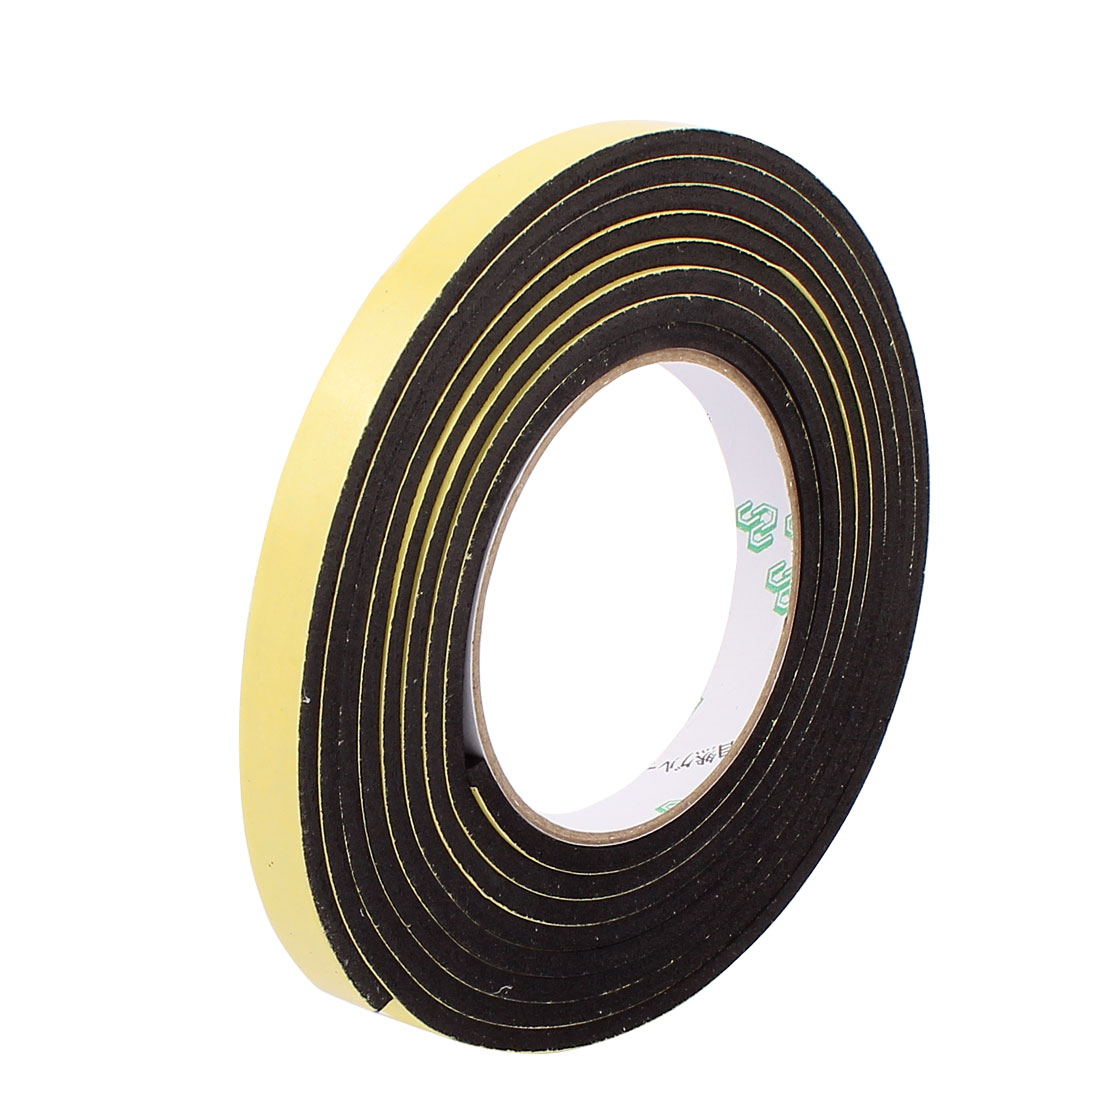 1CM Width 3 Meters Length 4MM Thick Single Sided Sealing Shockproof EVA Sponge Tape